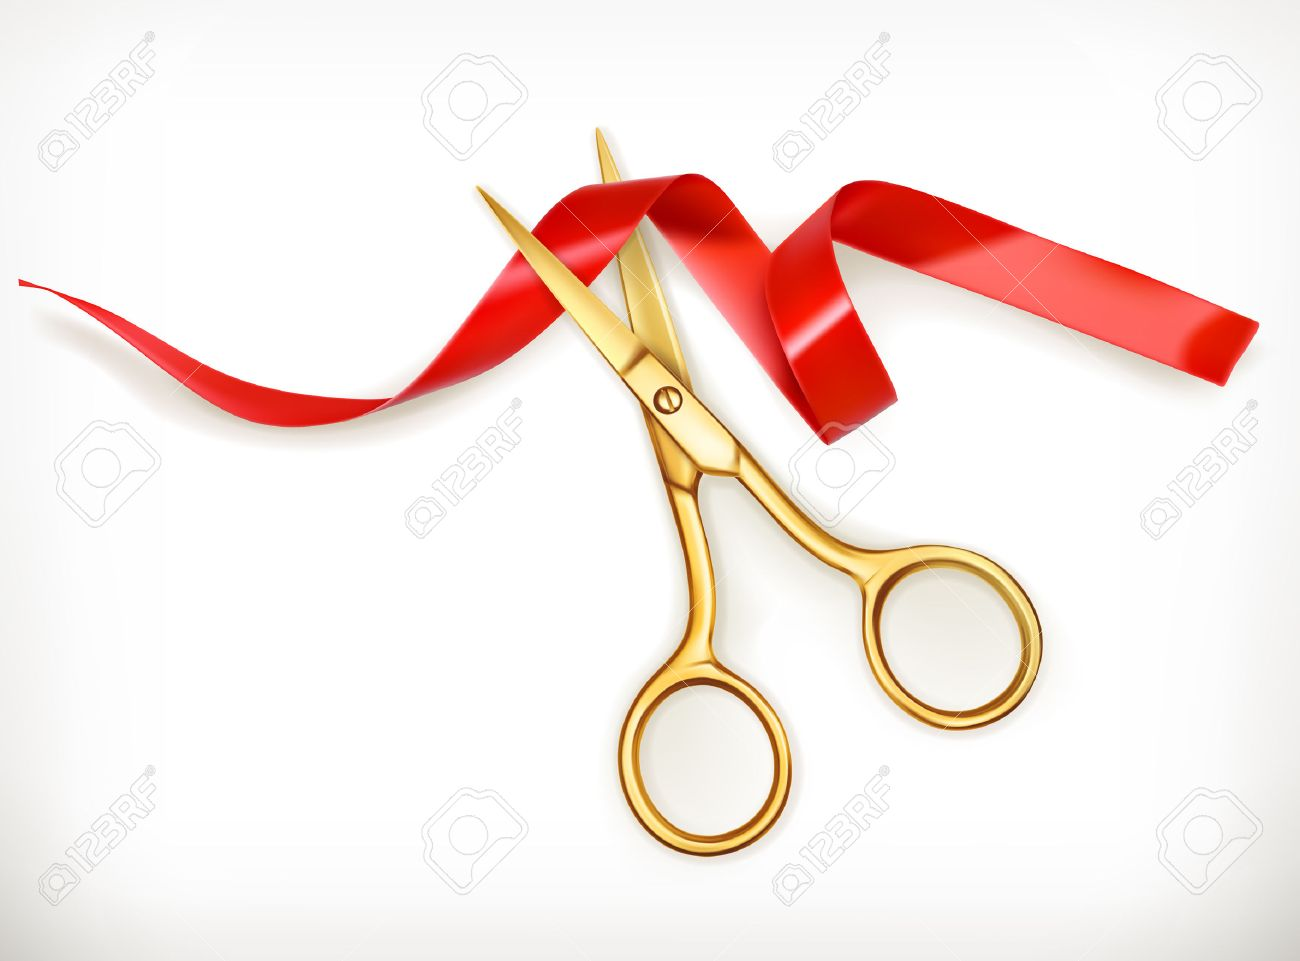 Golden scissors cut the red ribbon, vector object Stock Vector - 41950341